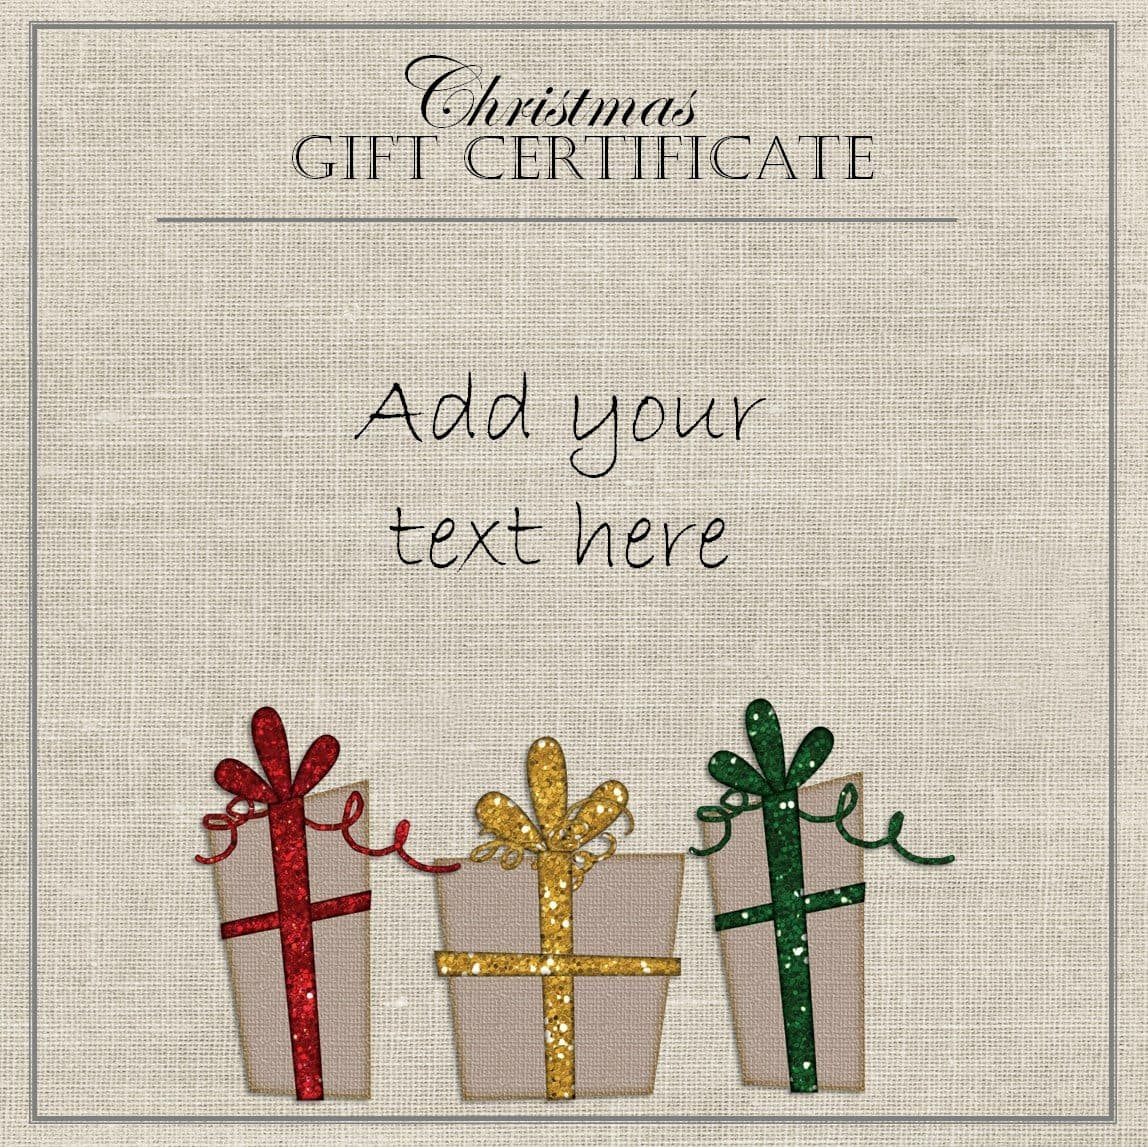 Free christmas gift certificate template customize online download elegant gift certificate template with three gifts with red yellow and green ribbons xflitez Choice Image